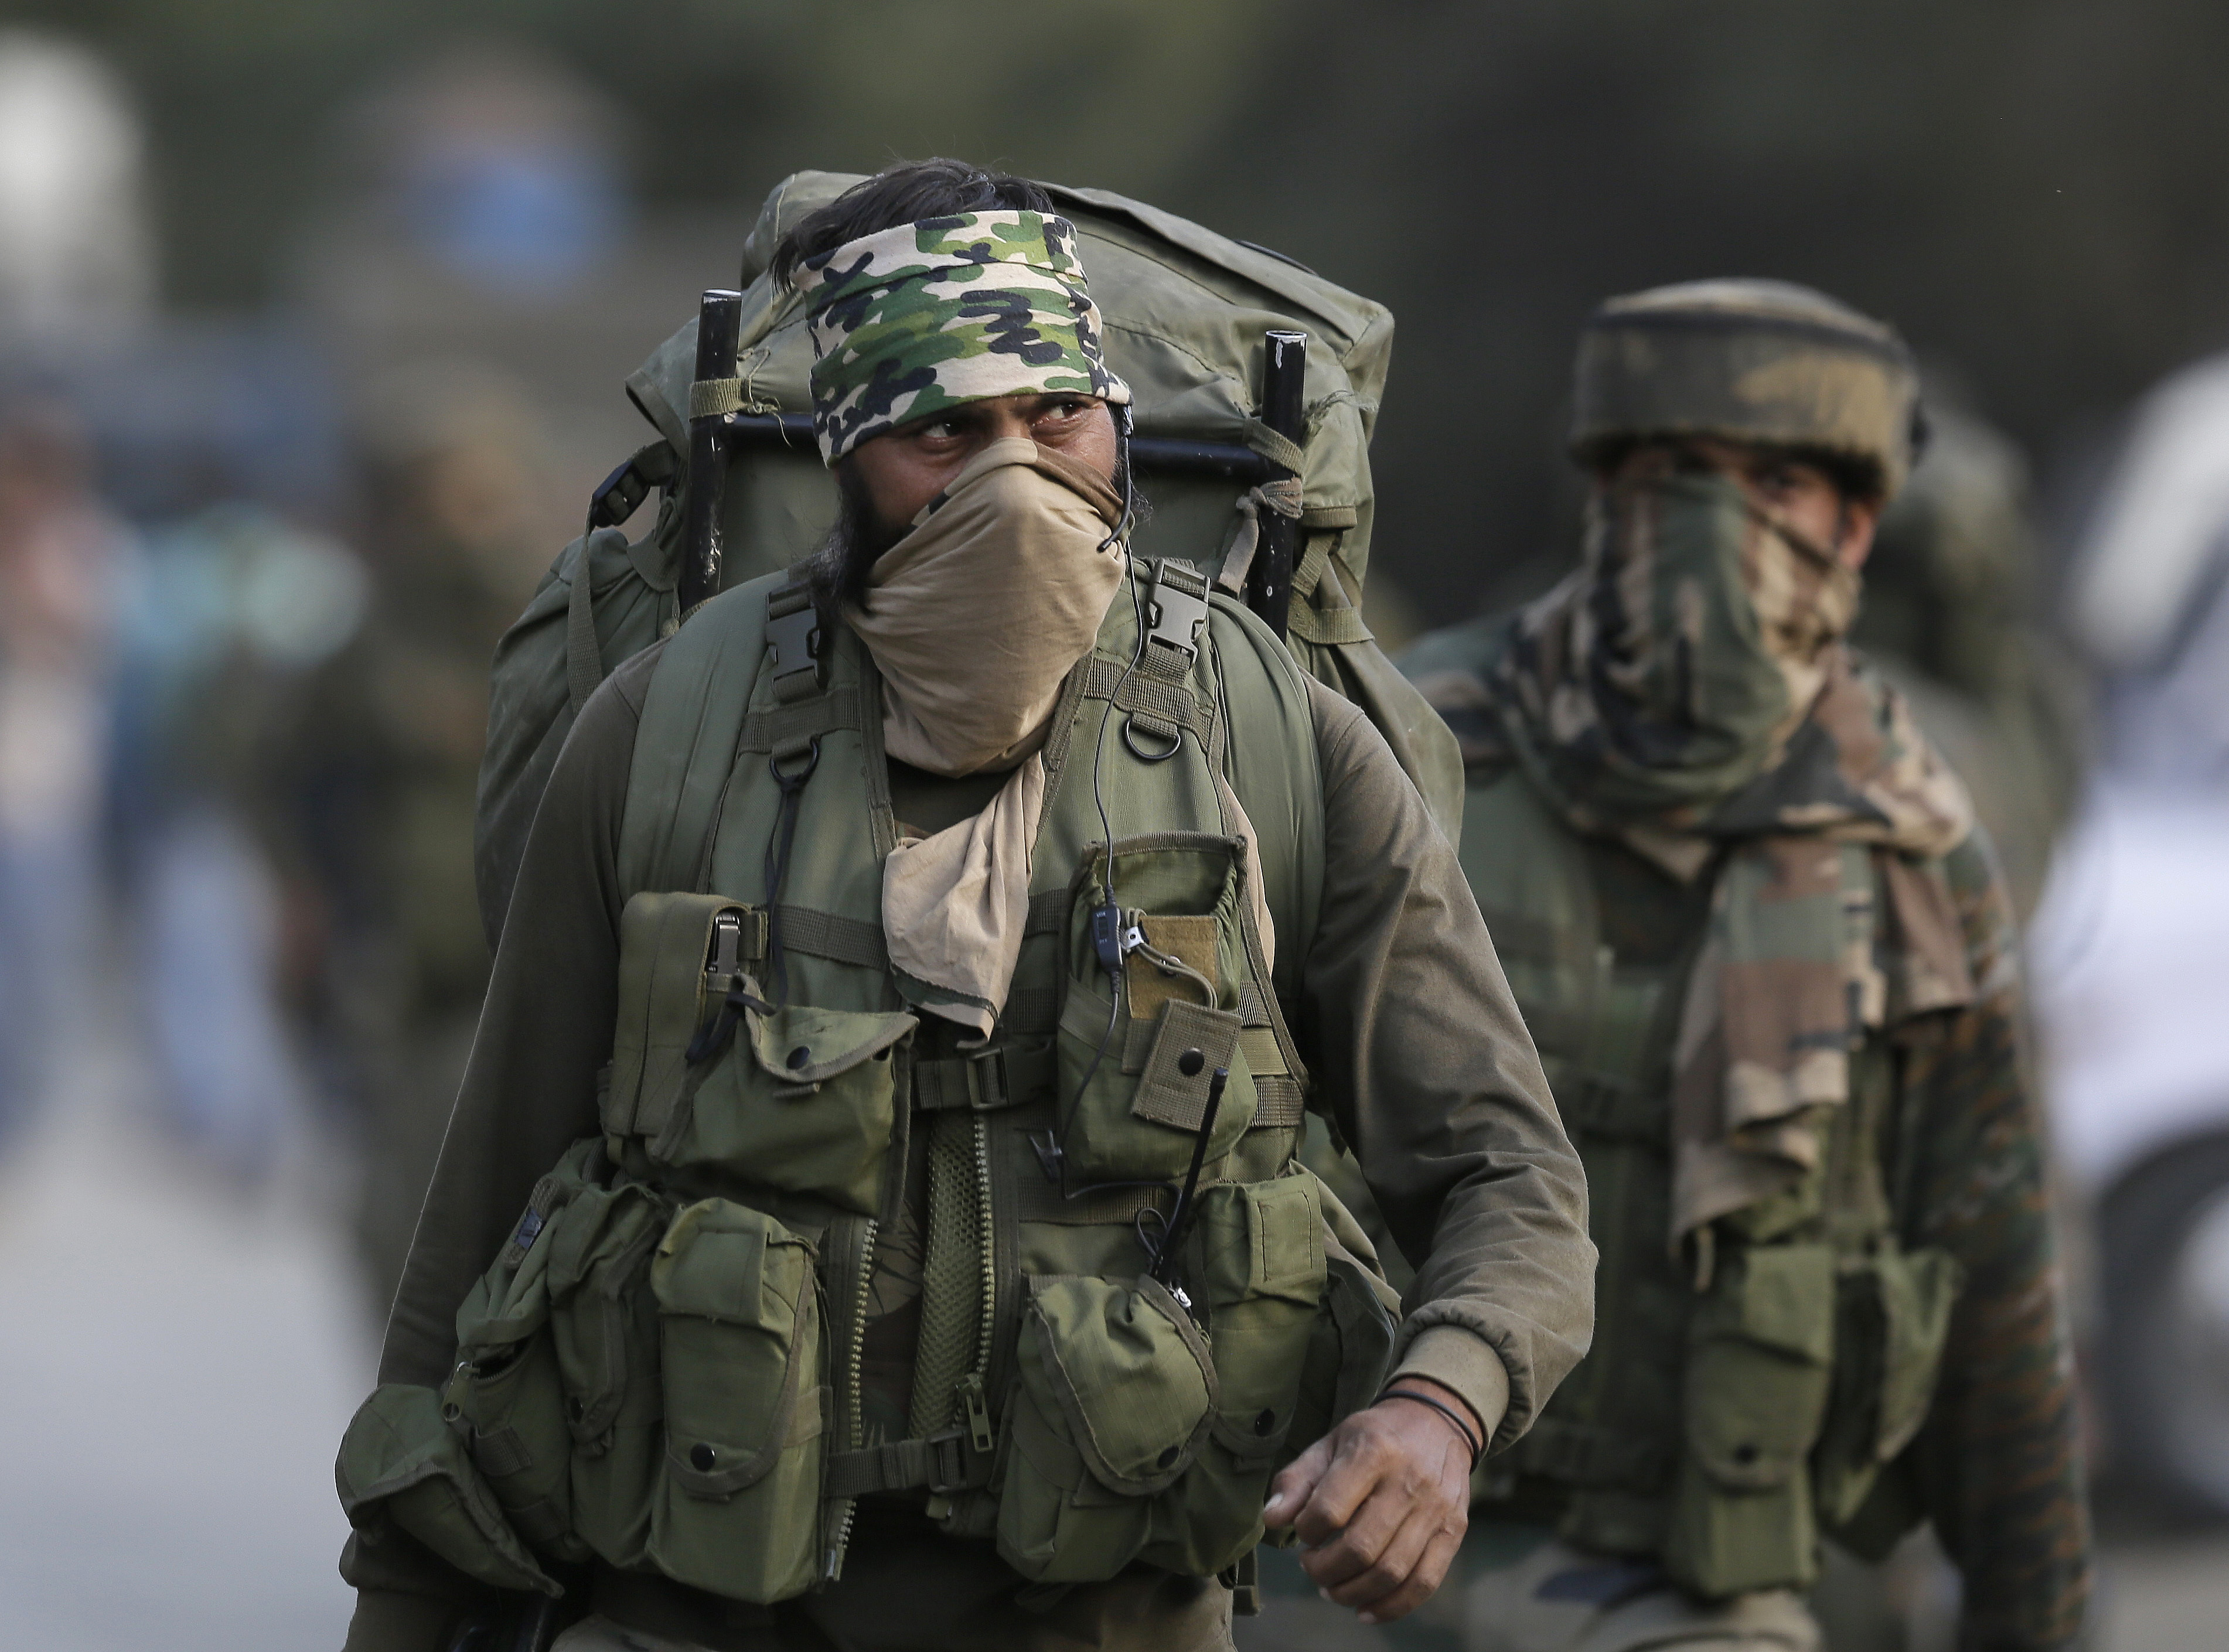 Indian Army soldiers leave the site of a gun battle in Pampore, on the outskirts of Srinagar, Kashmir.